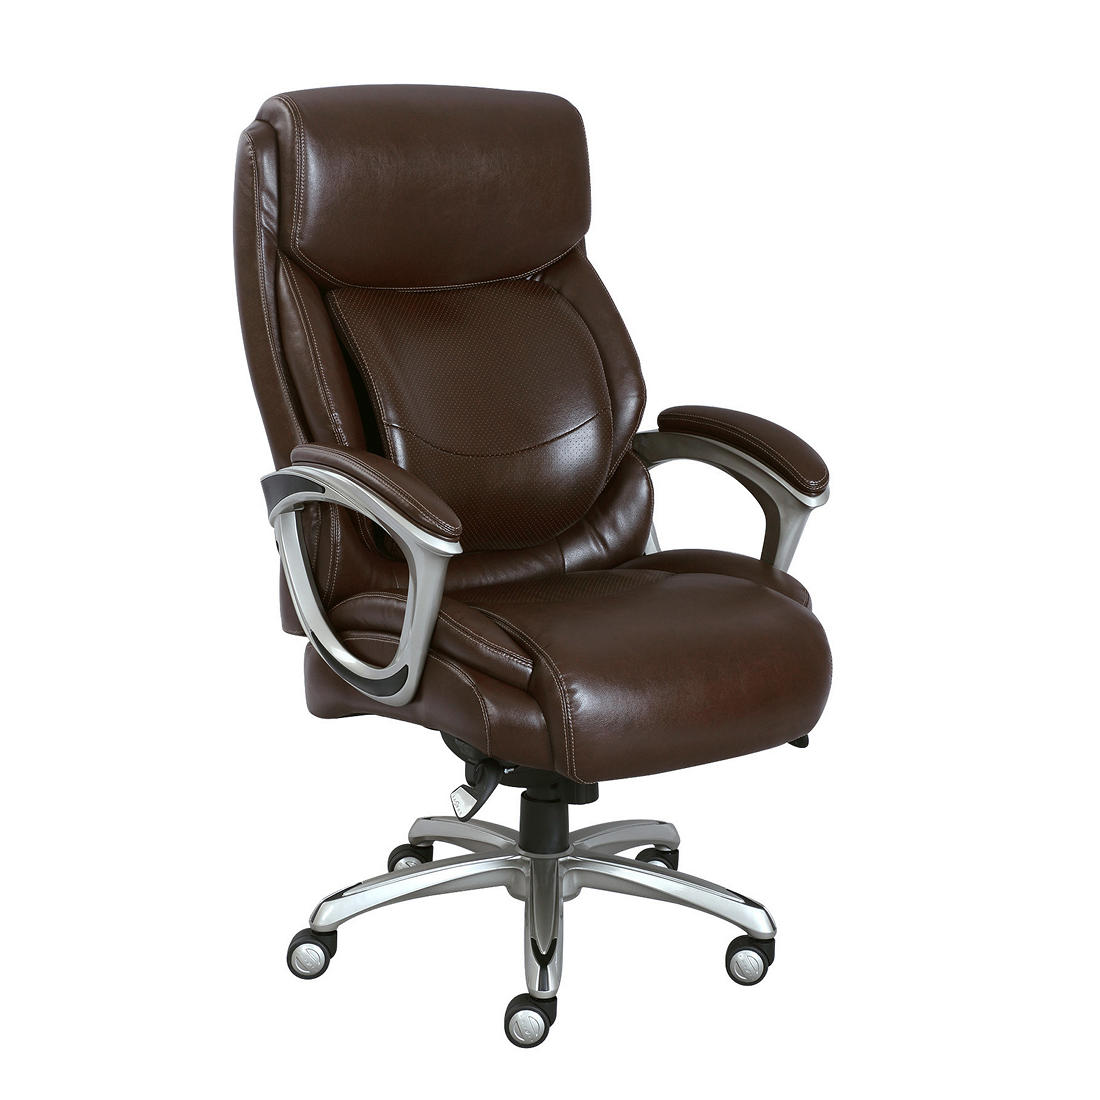 Lazy Boy Chair >> La Z Boy Big And Tall Bonded Leather Executive Chair Brown